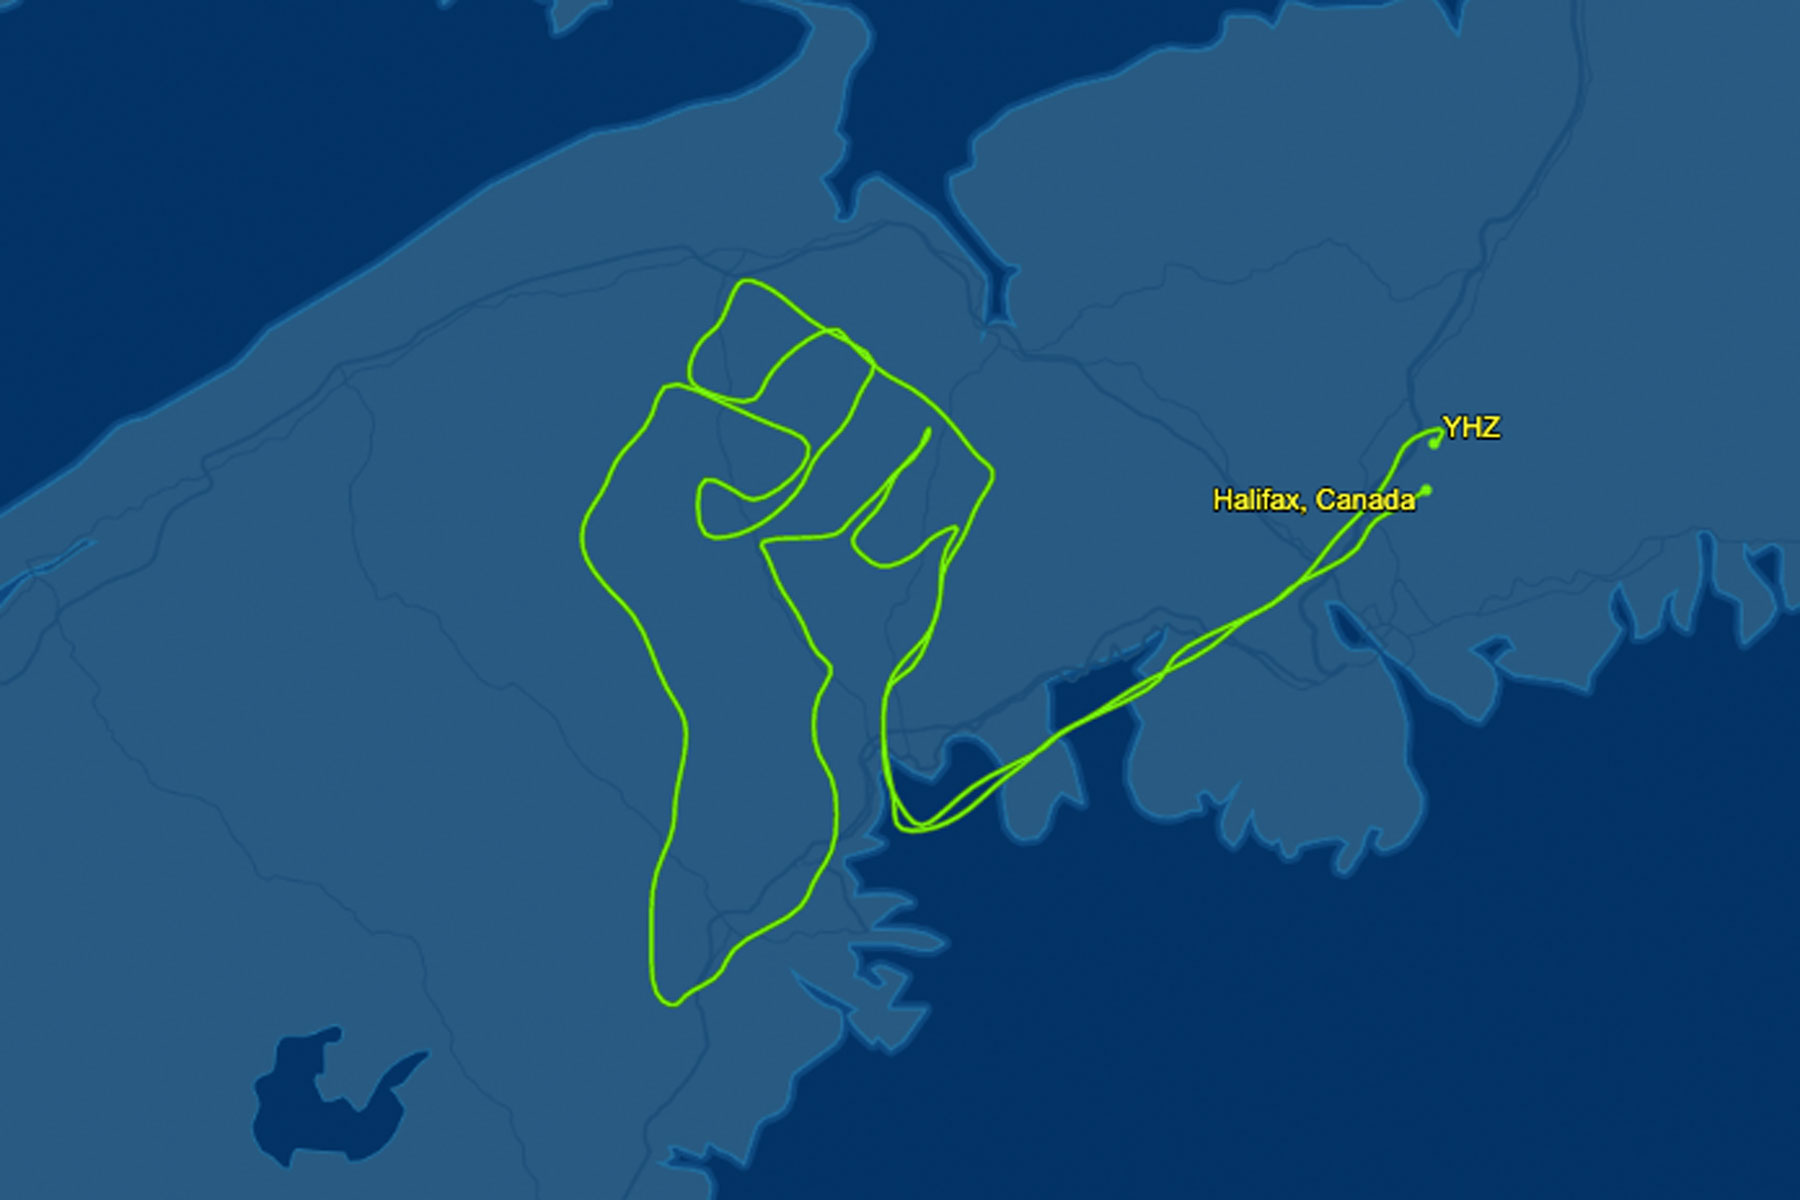 flight tracking software depicts a fist outlined in the sky